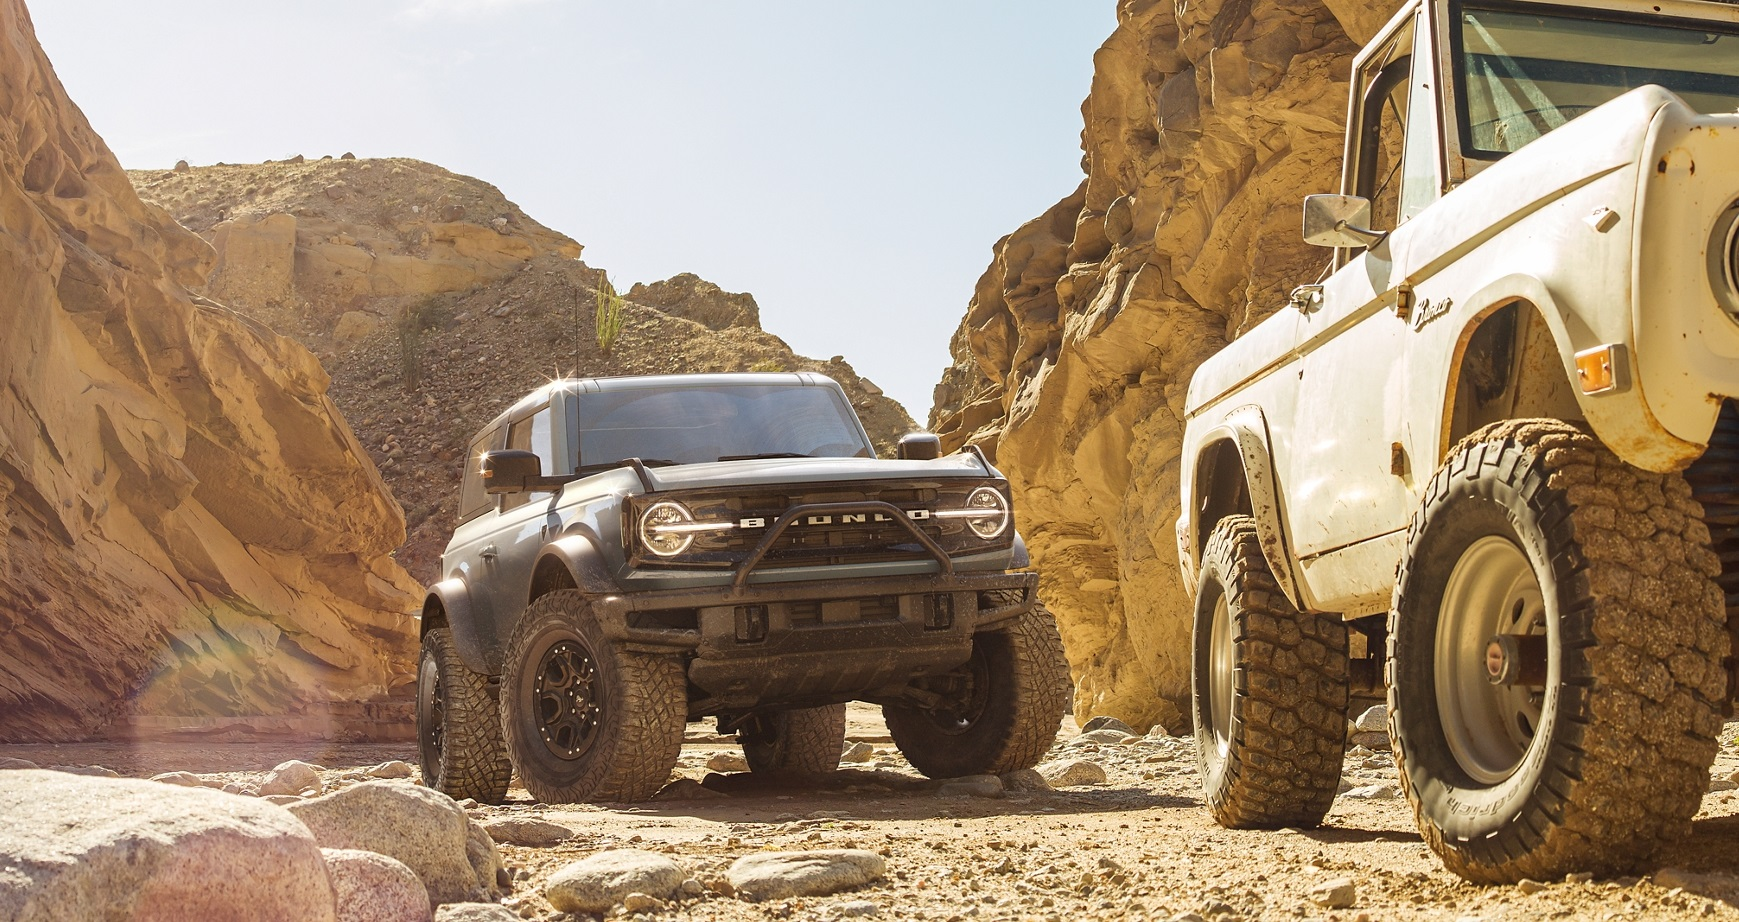 Ford site old and new Bronco.jpg